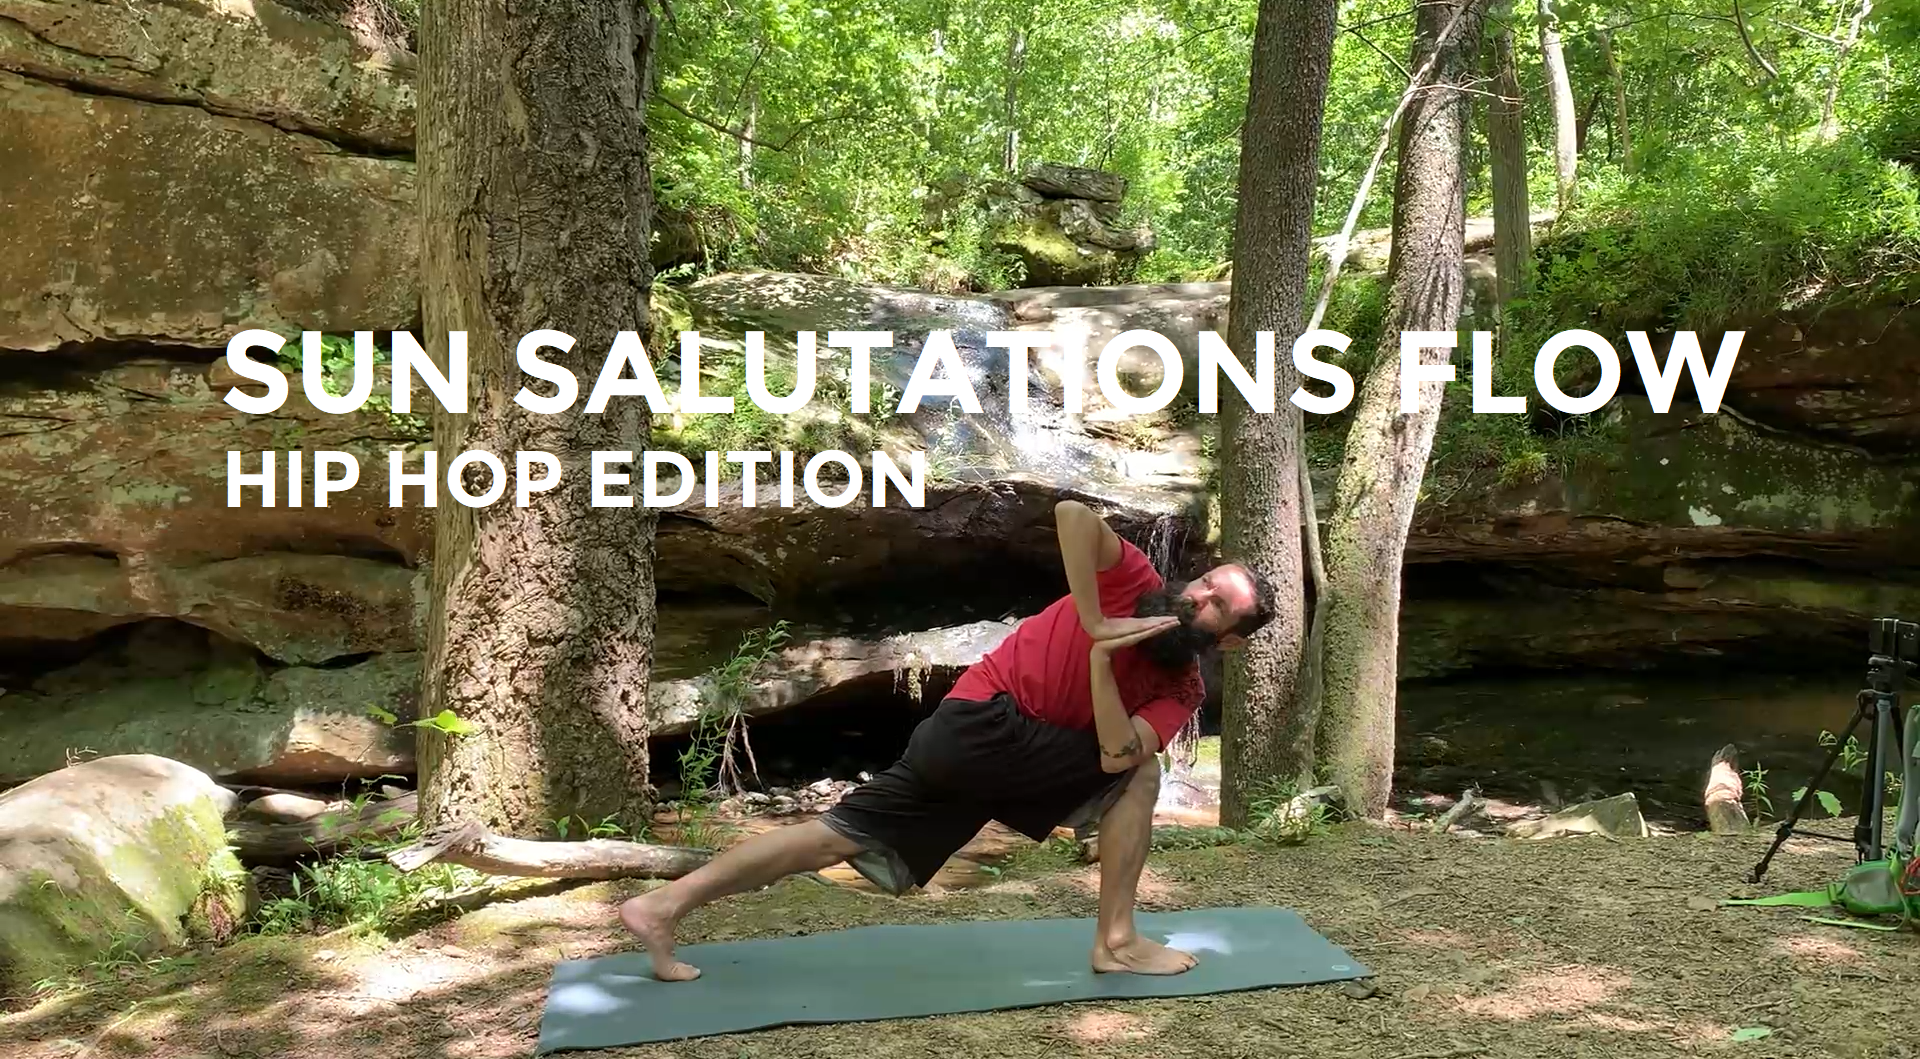 Sun Salutations Flow - Hip Hop